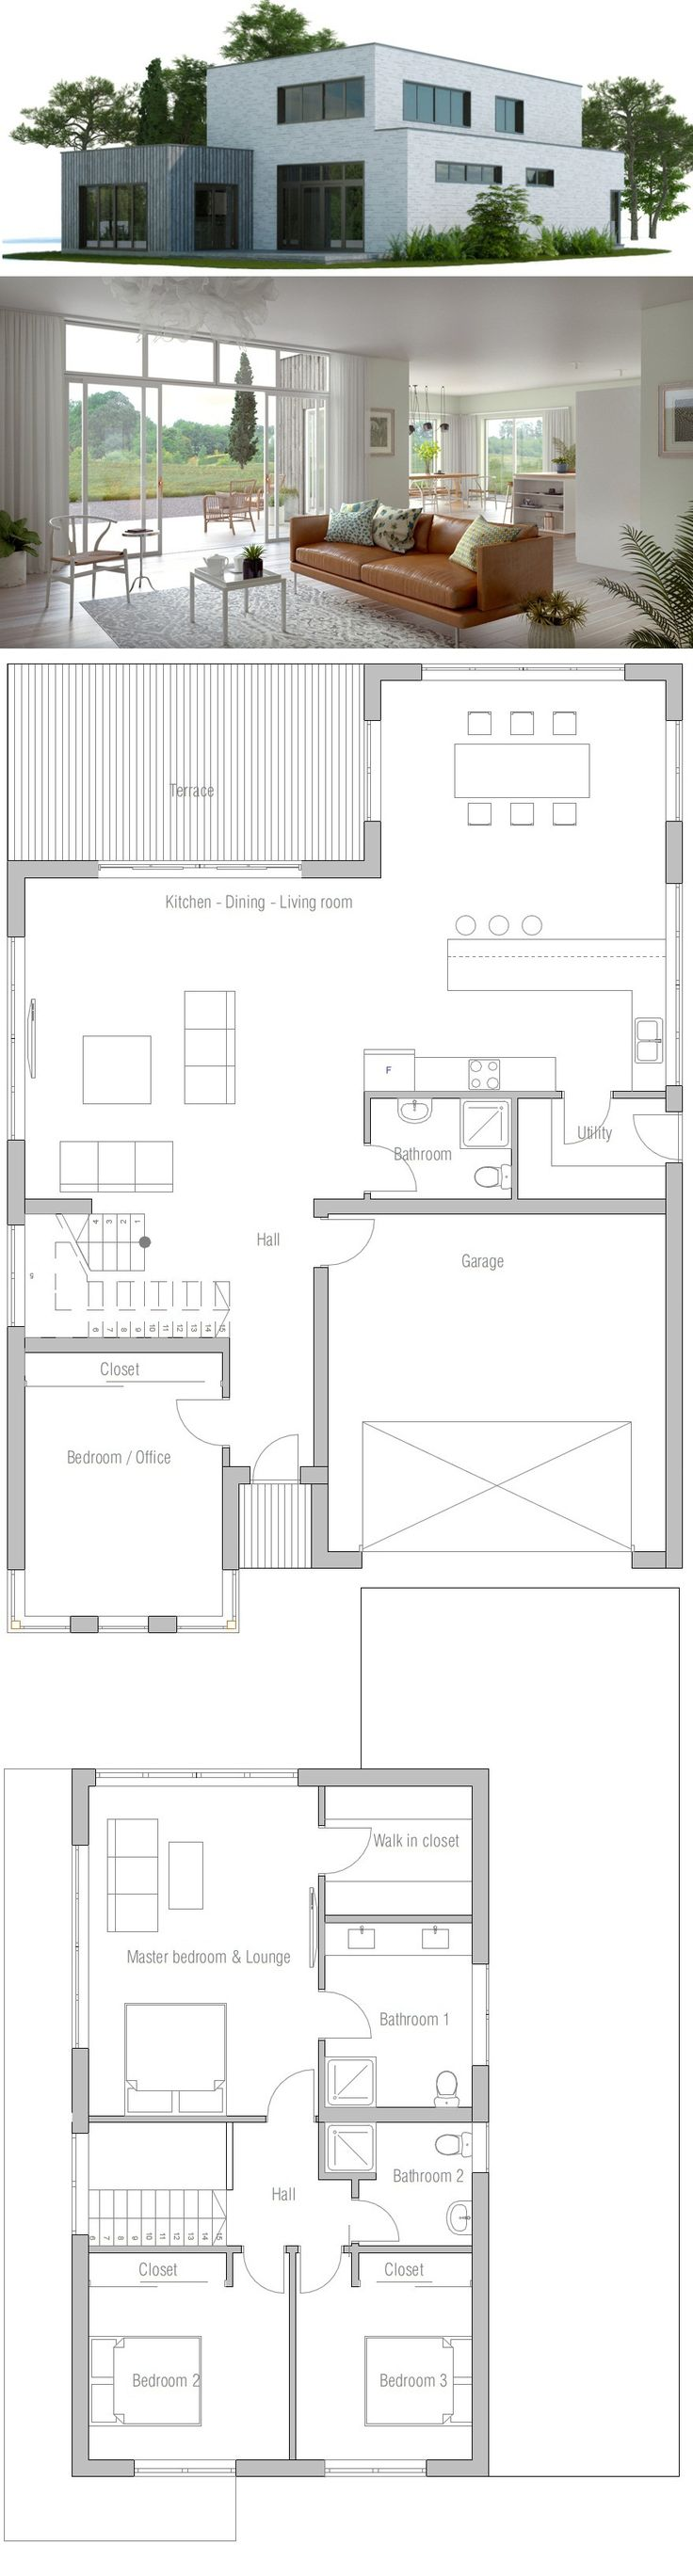 25 best ideas about modern home plans on pinterest house design plans modern floor plans and - Separate garage plans minimalist ...